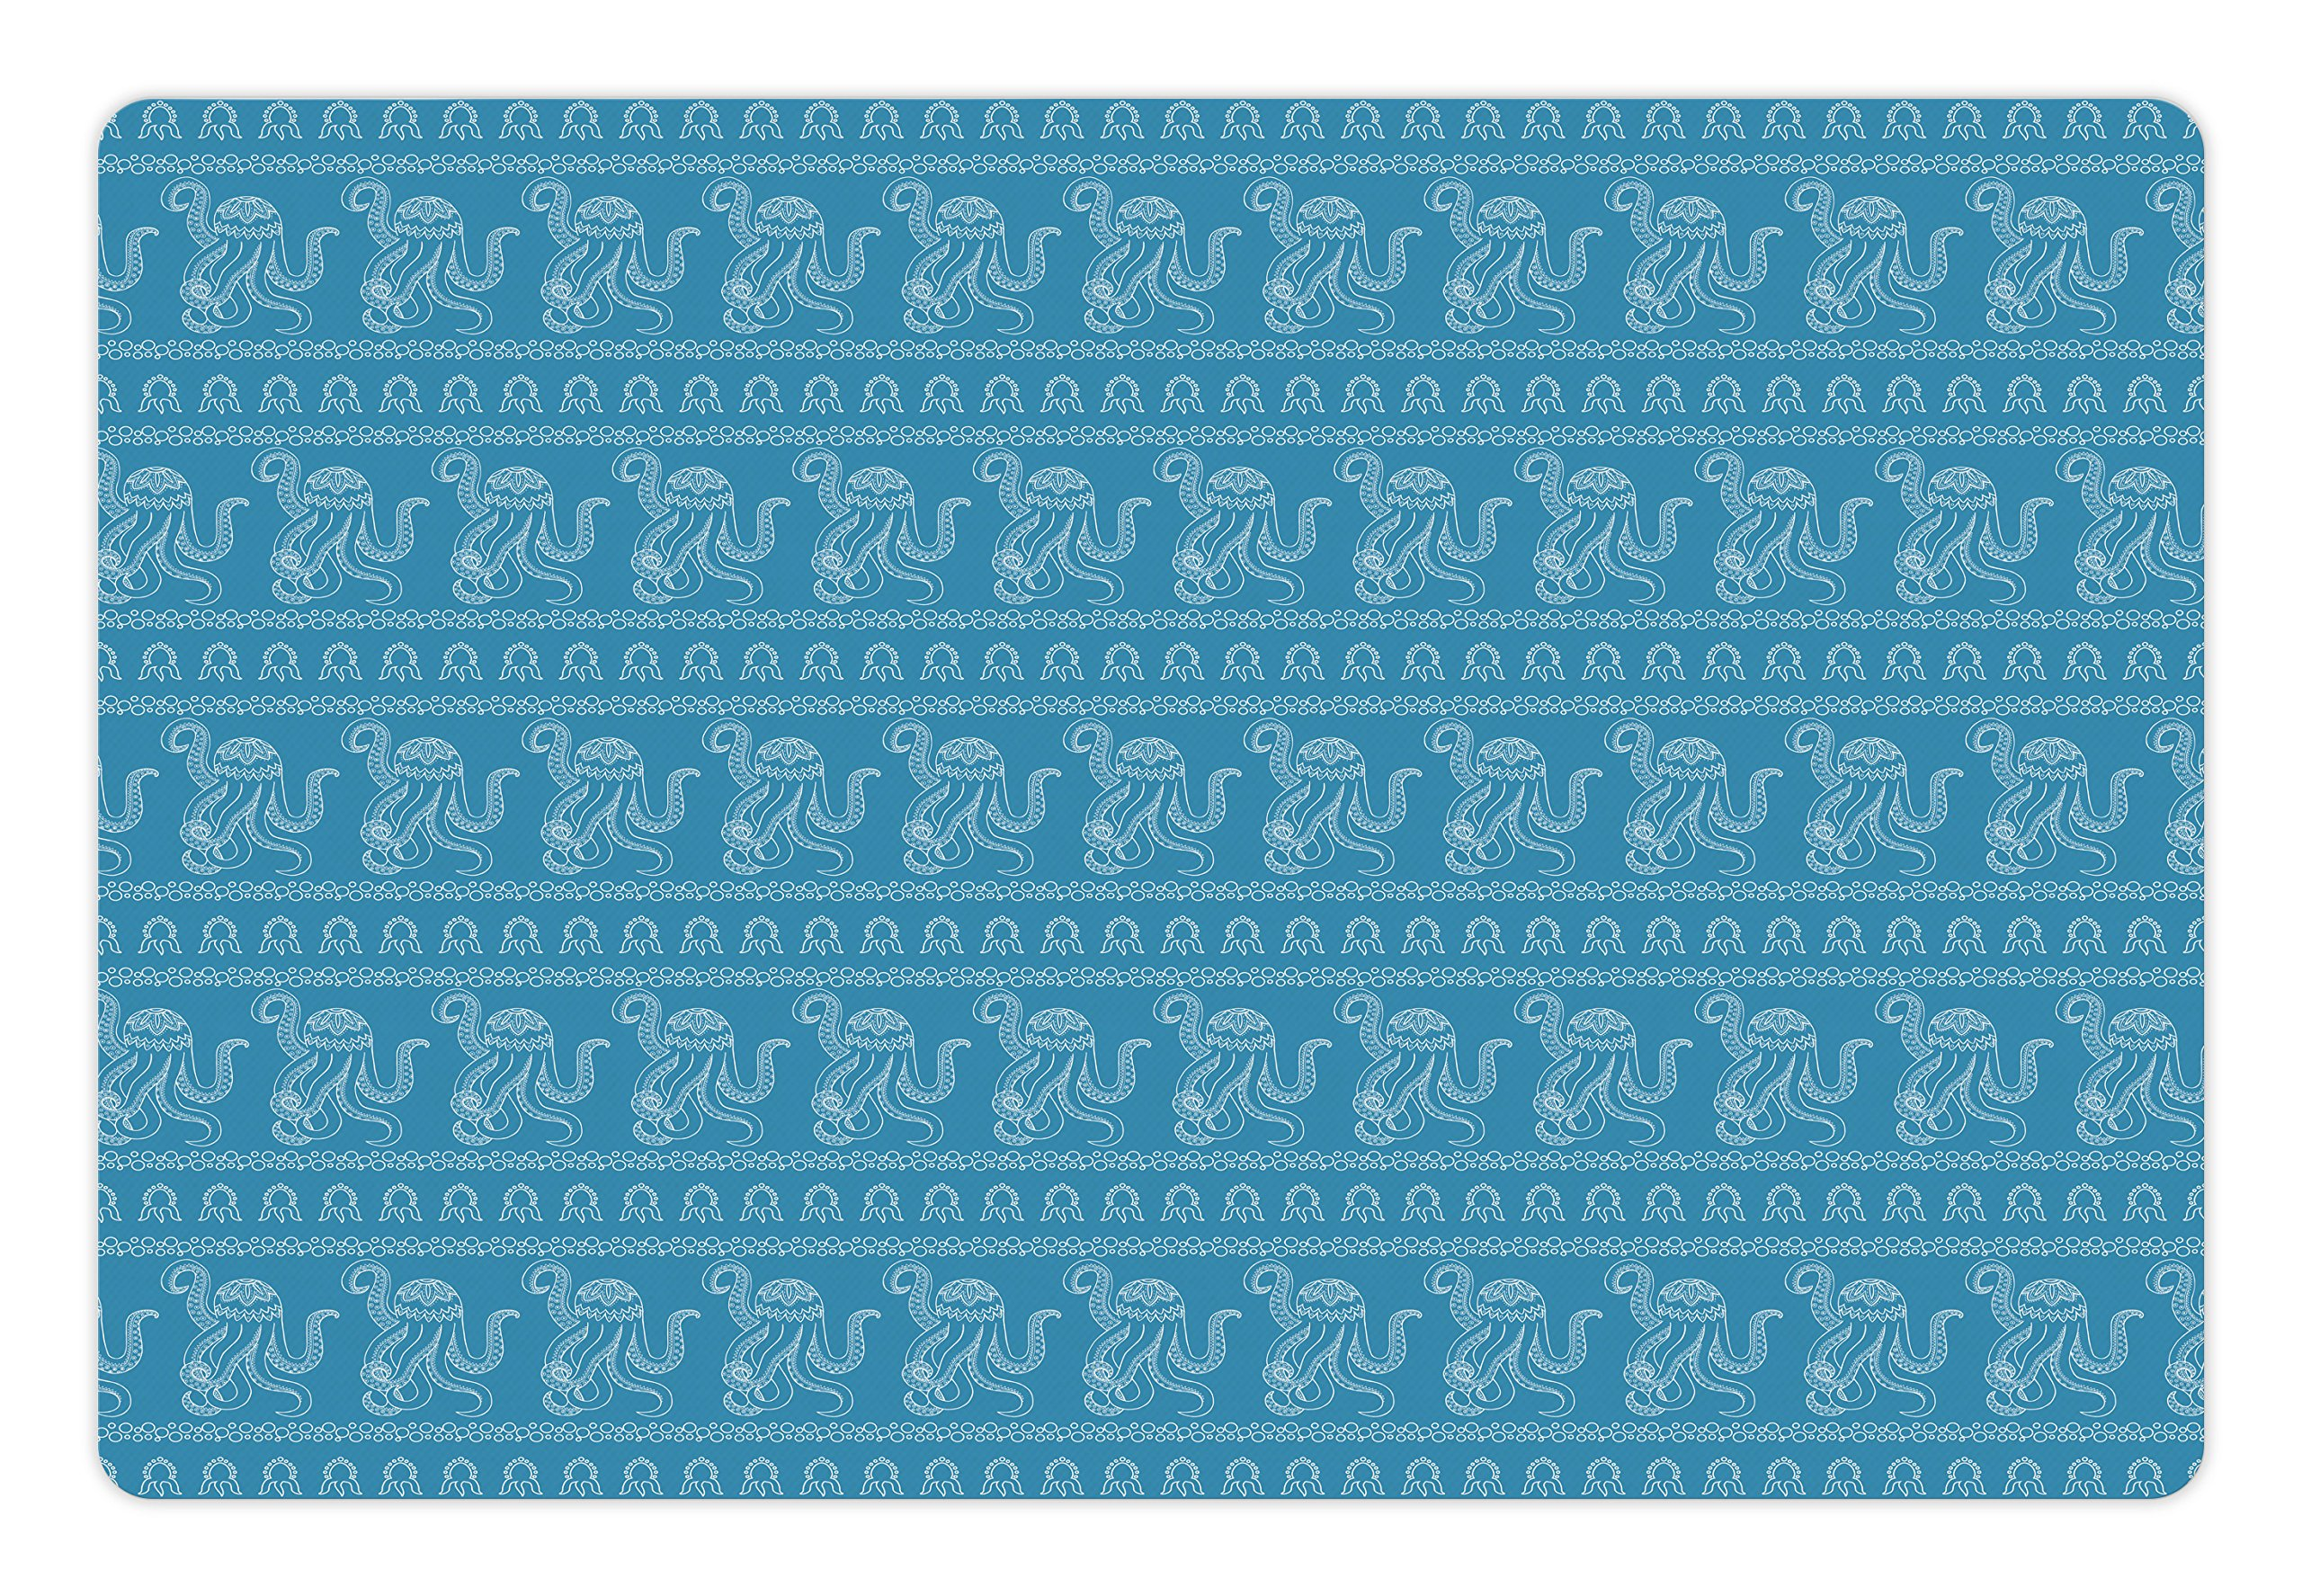 Ambesonne Octopus Pet Mat for Food and Water, Illustration of Underwater Life in the Style of Zentangle Ethnic Animals, Rectangle Non-Slip Rubber Mat for Dogs and Cats, Pale Blue and White